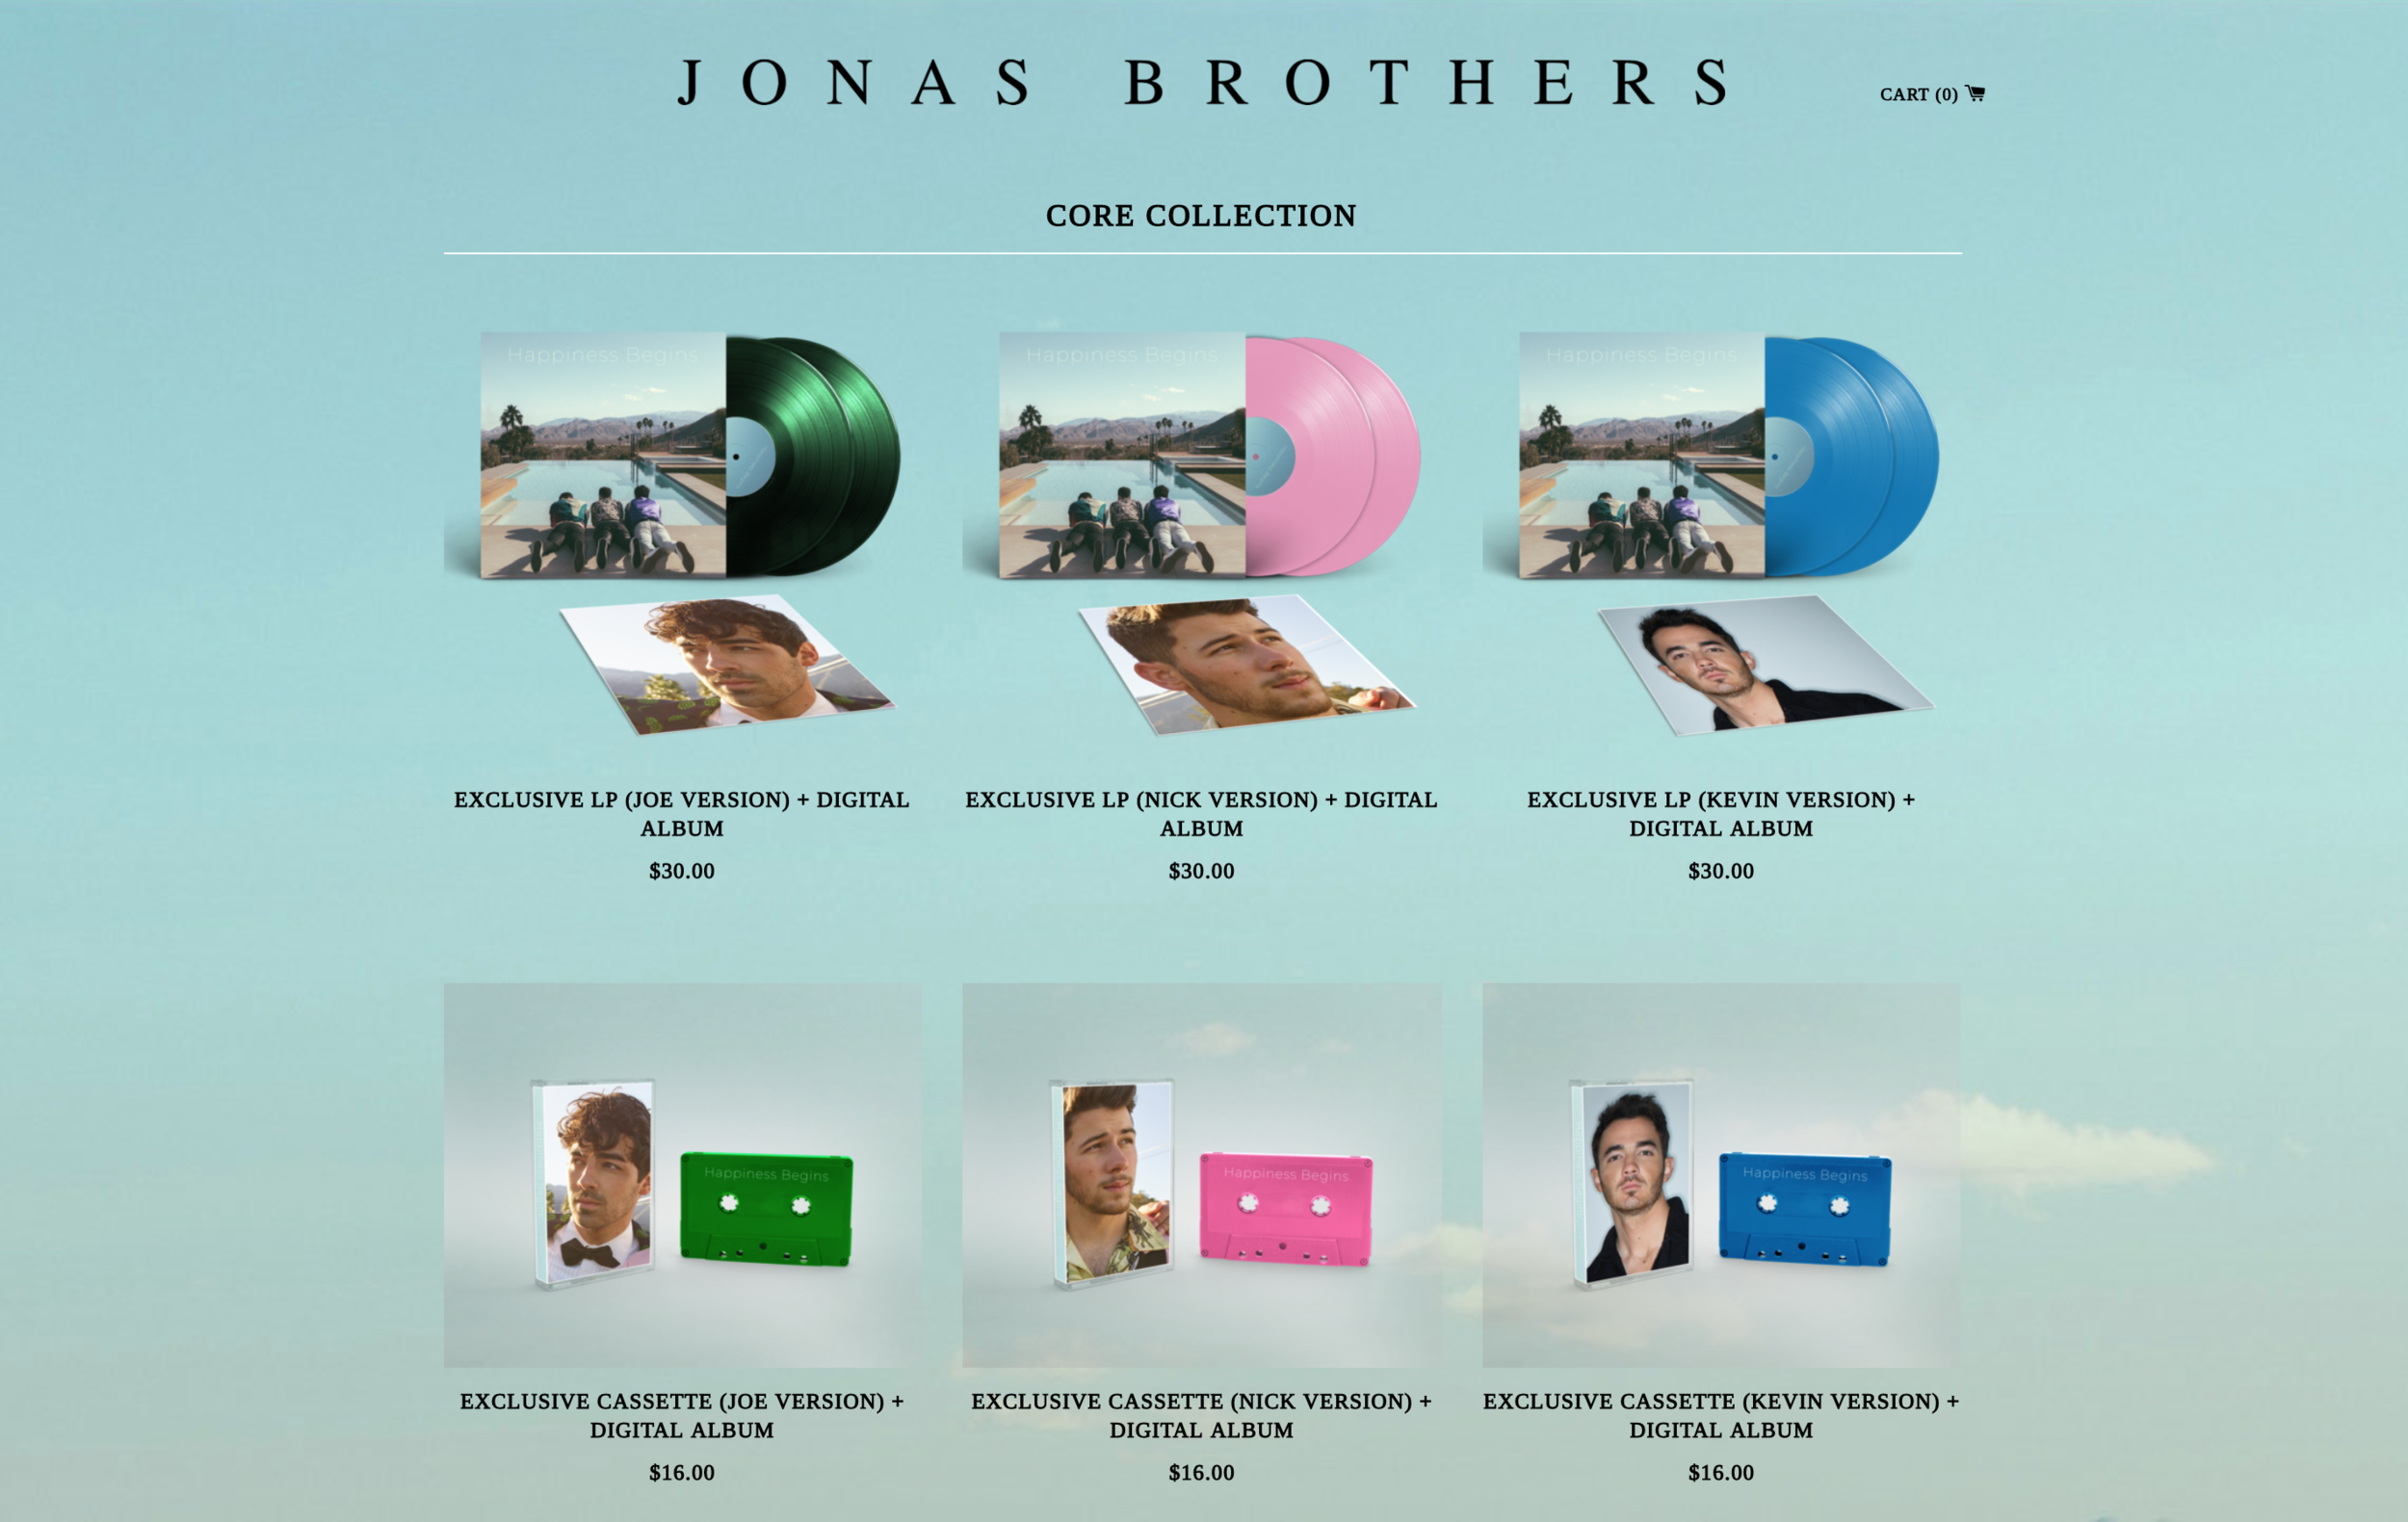 jonas_brothers.png